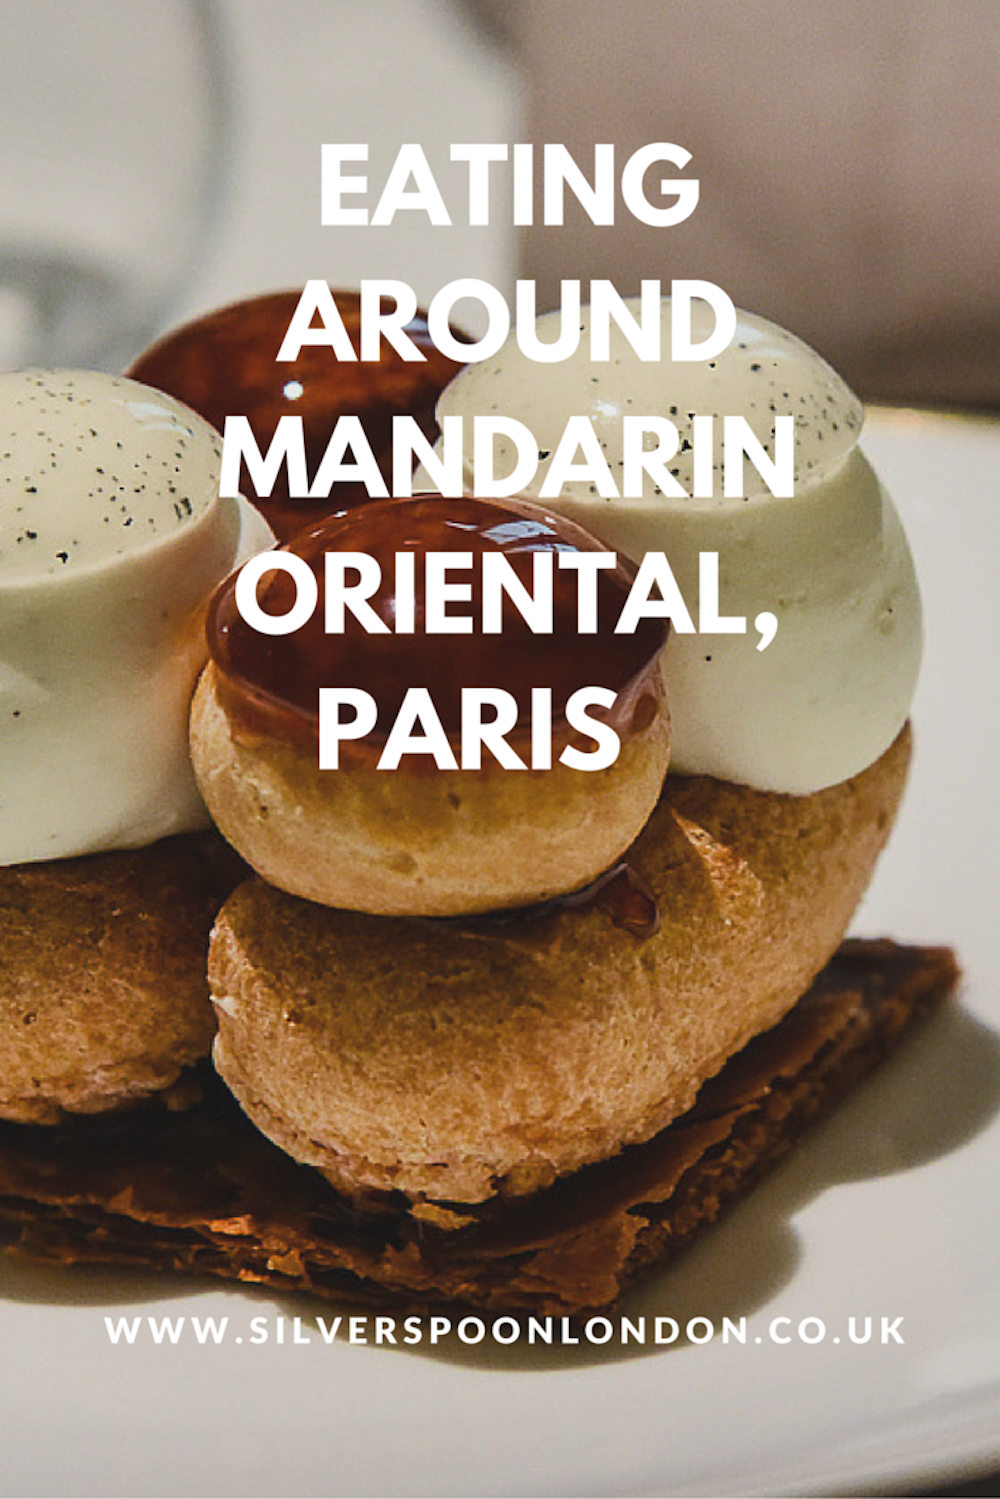 Reviews of the two restaurants at Mandarin Oriental Paris.